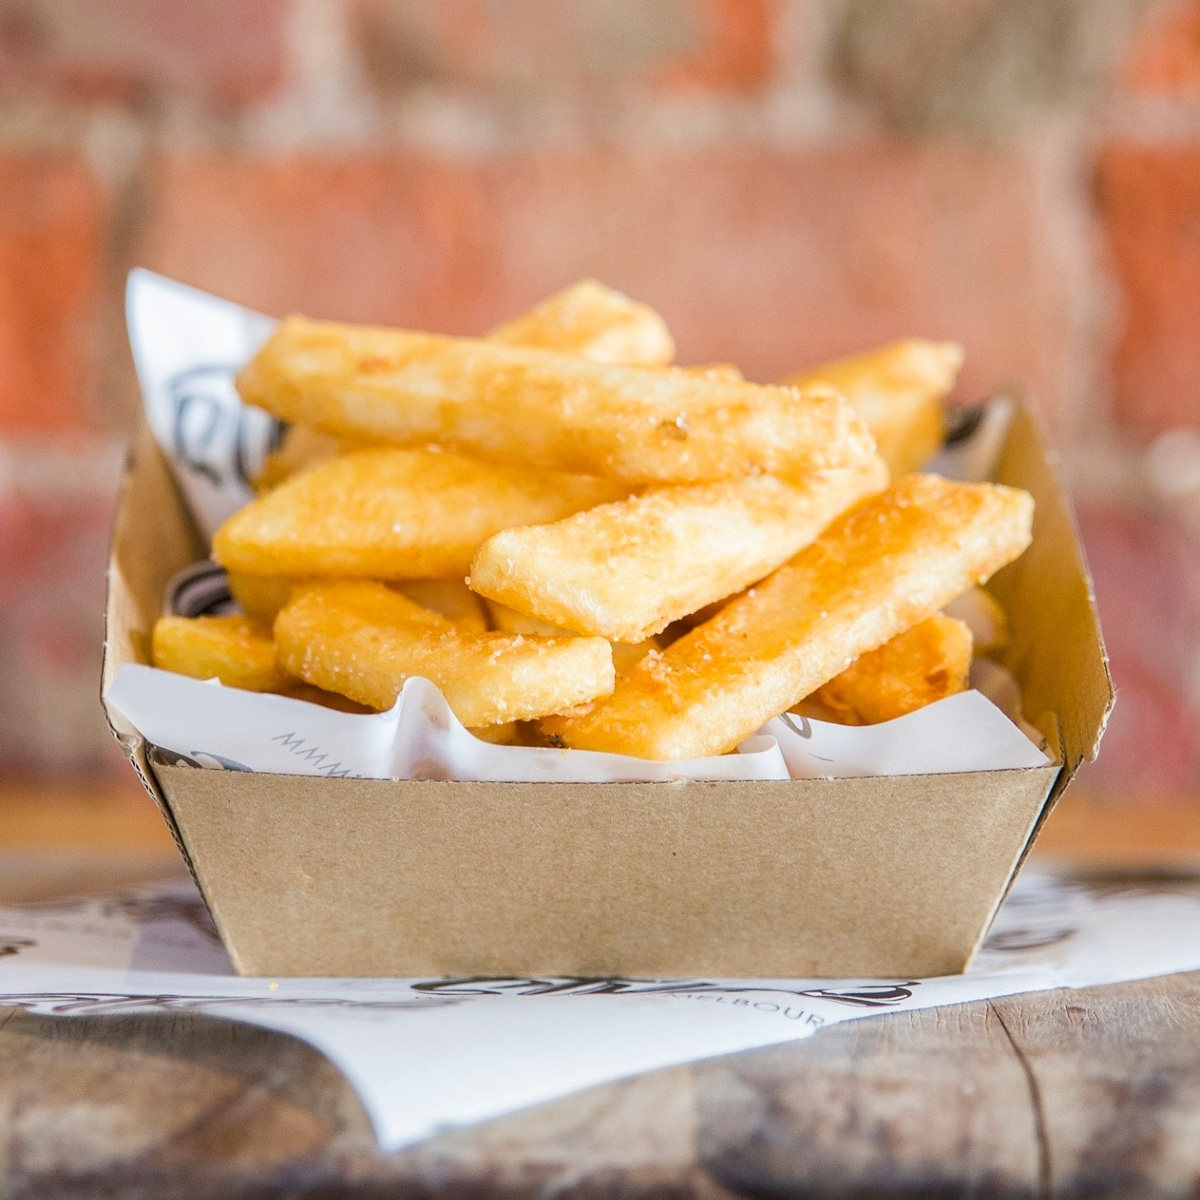 BEER battered chips - $4LOAD YOUR CHIPS+ CREAMY CHEESE+ $2.50+ CANDIED BACON+ $2.50